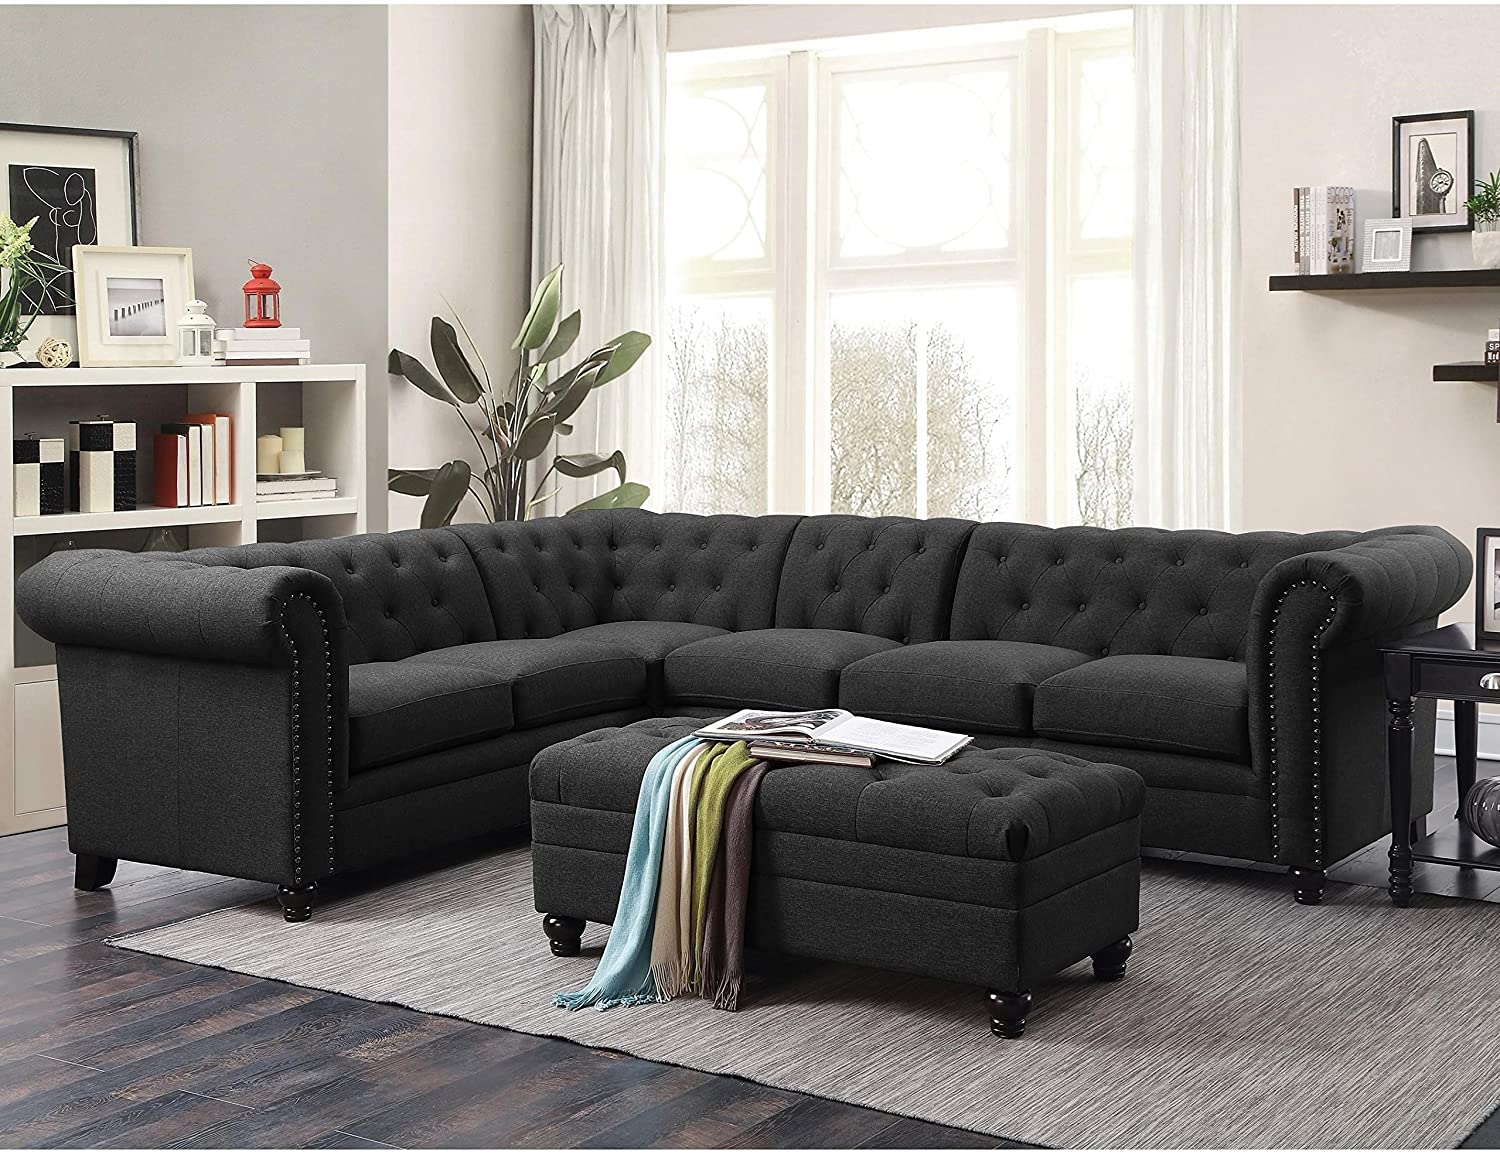 Coaster Home Furnishings Living Room Sectional Sofa, Grey/Black